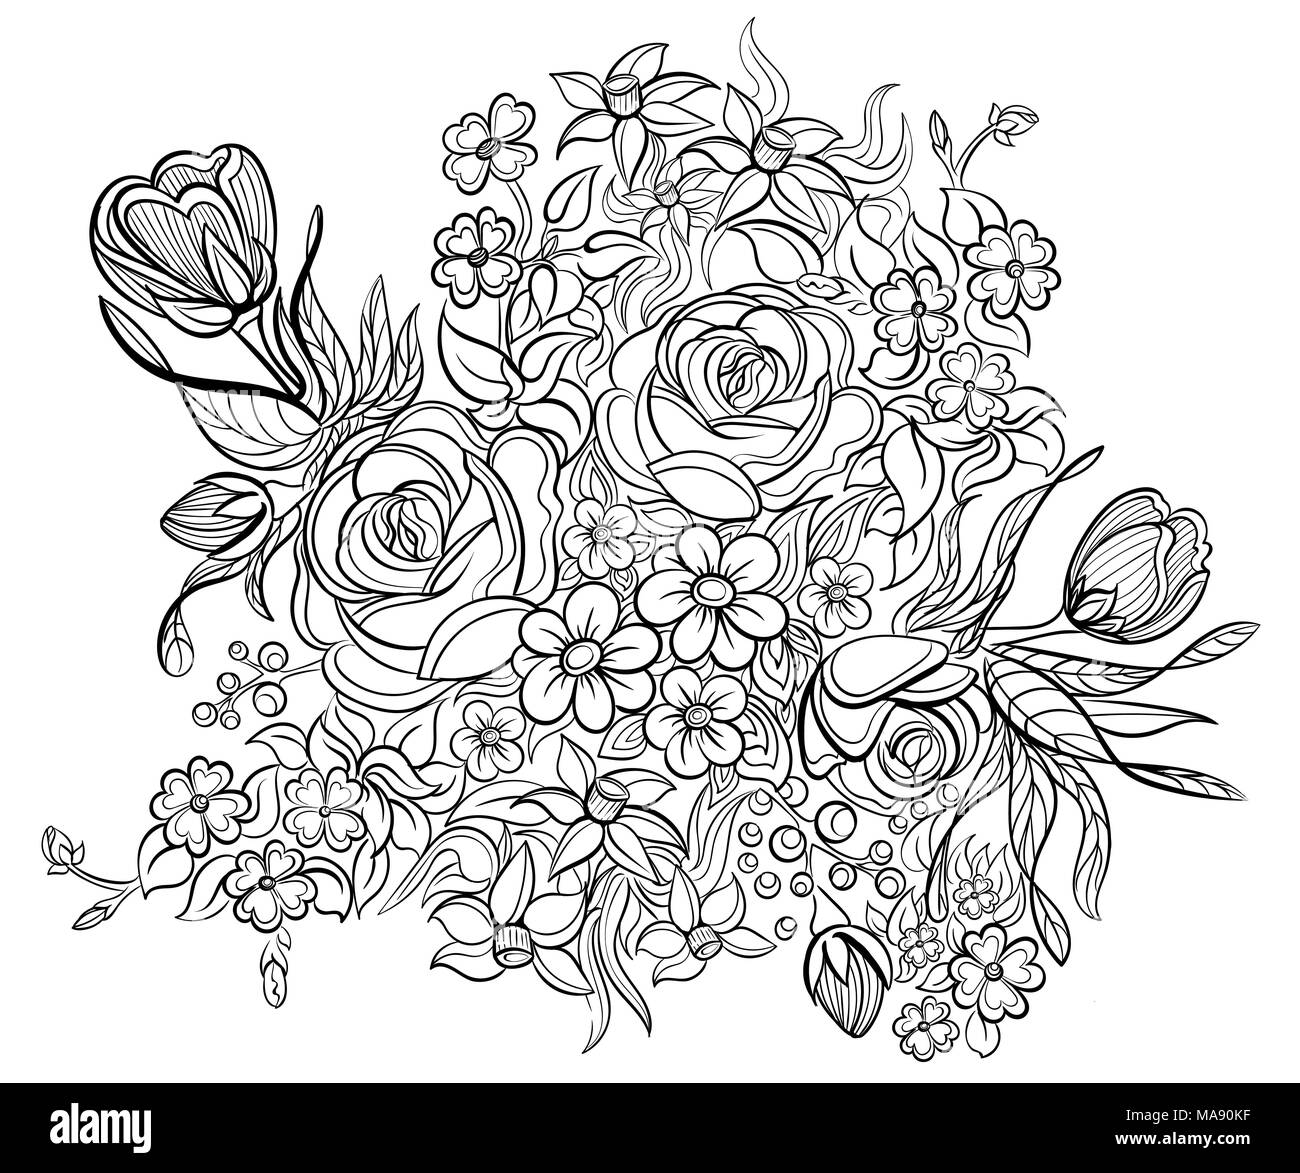 Floral Elements And Leaves For Coloring Book Anti Stress Coloring